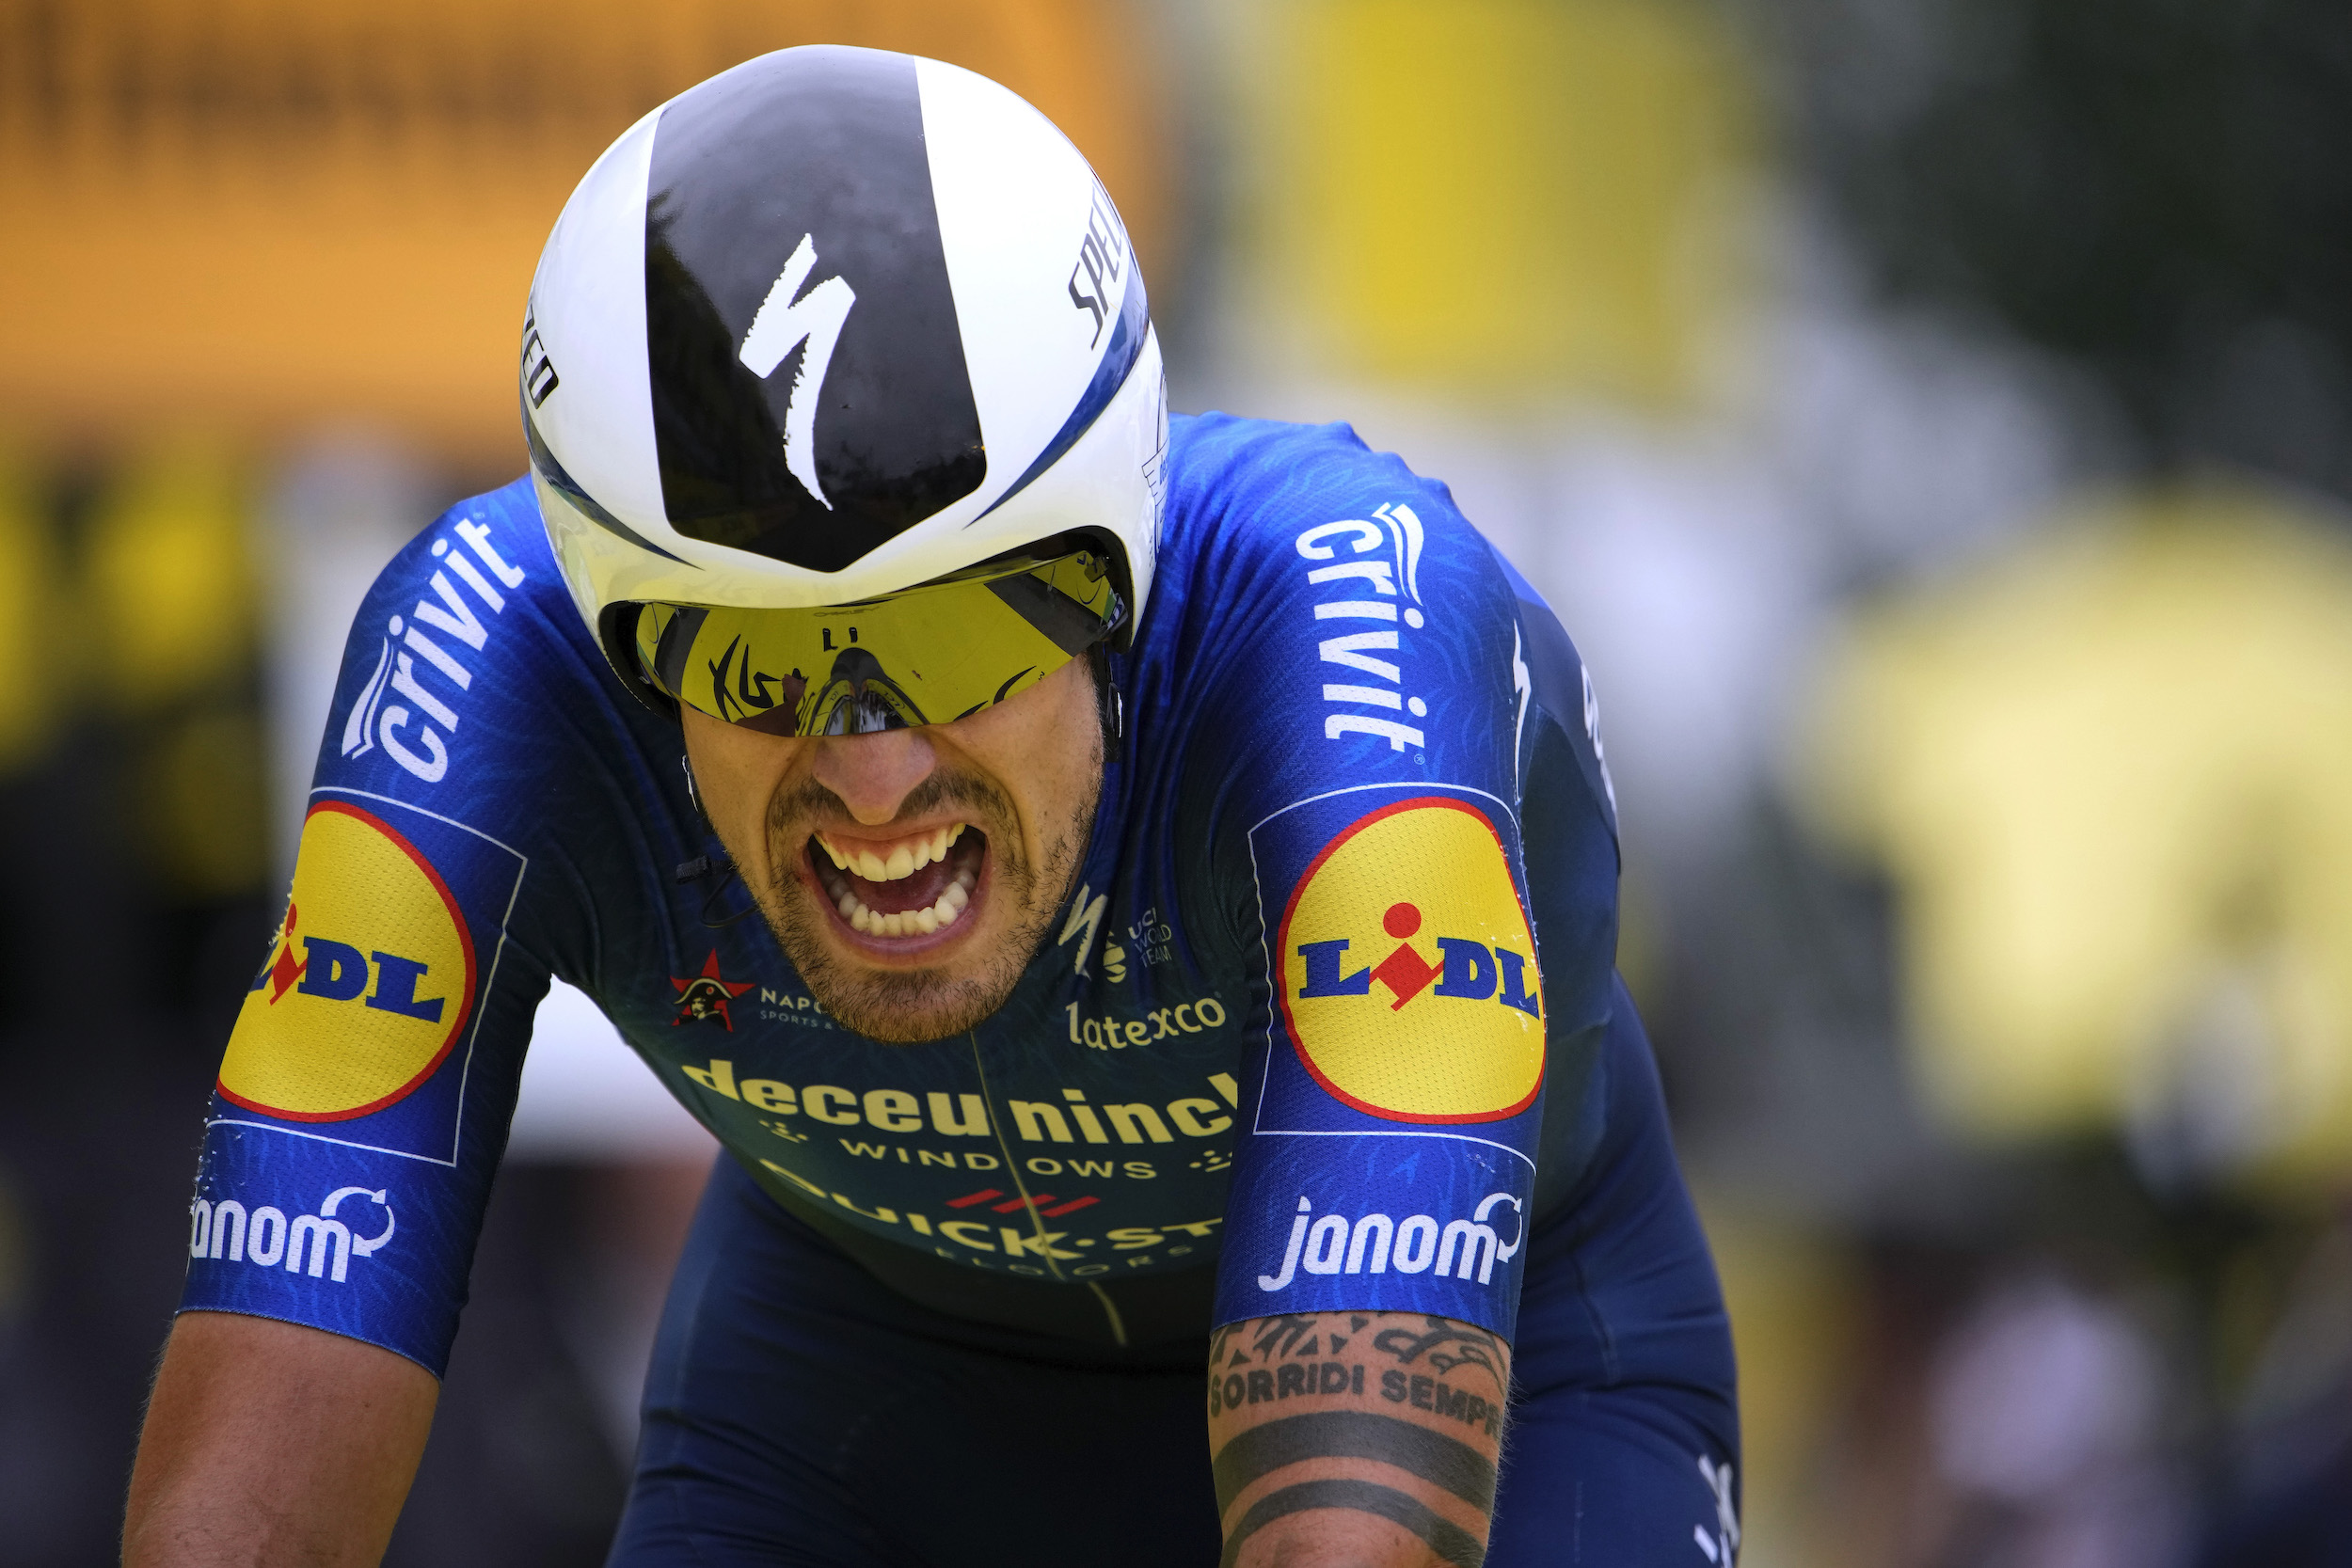 Mattia Cattaneo on stage five of the Tour de France